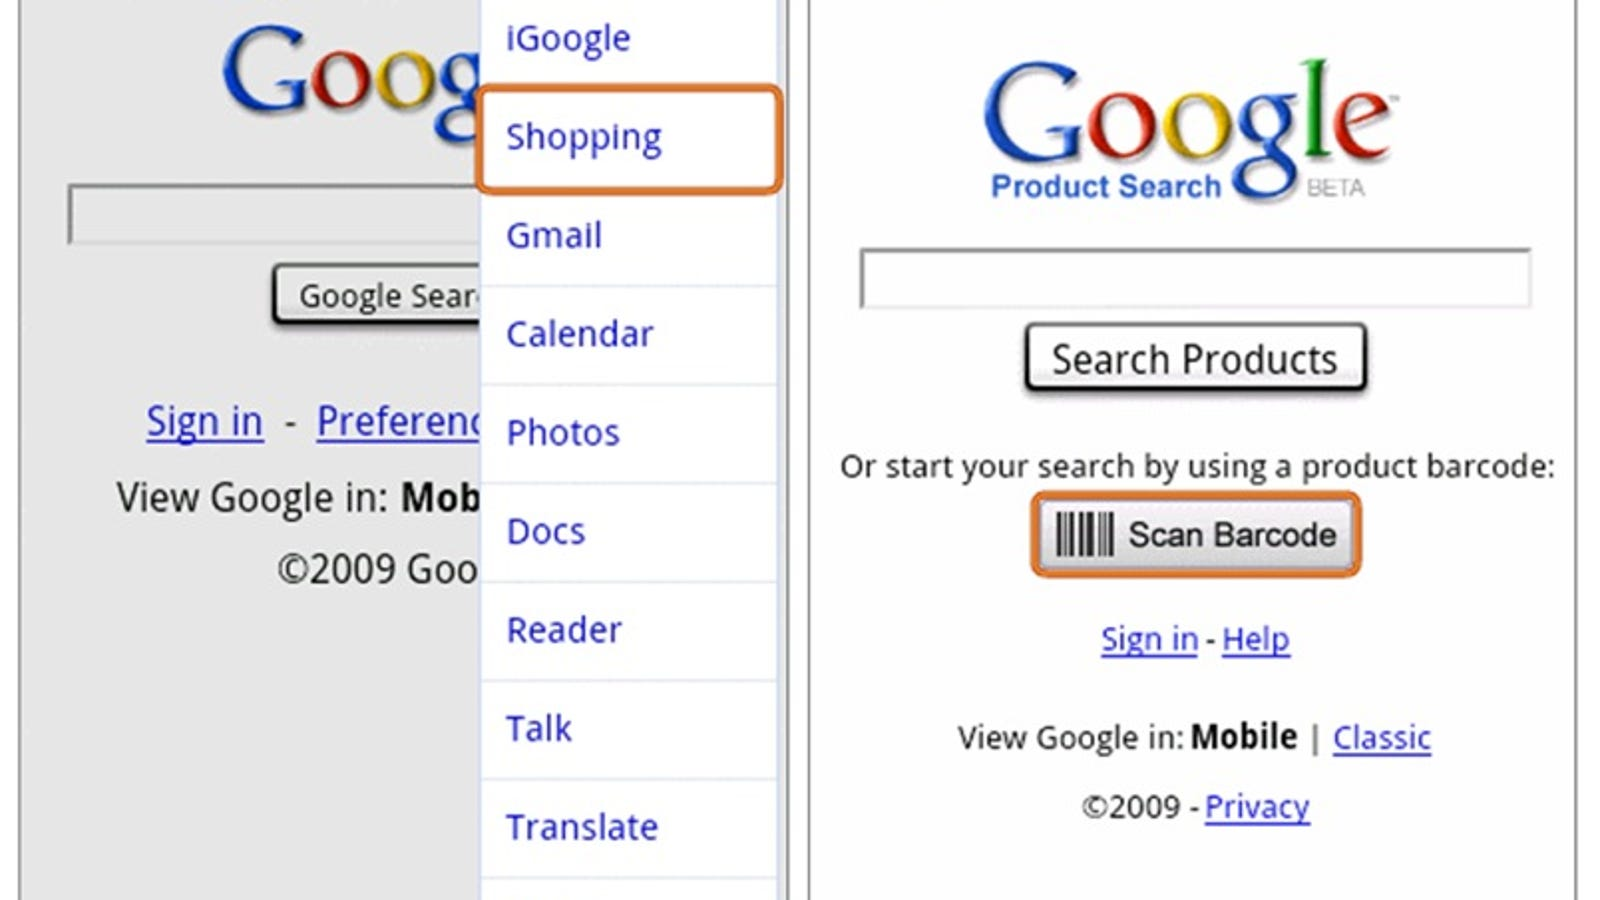 Google Product Search For Android Phones Now Features Barcode Scanning